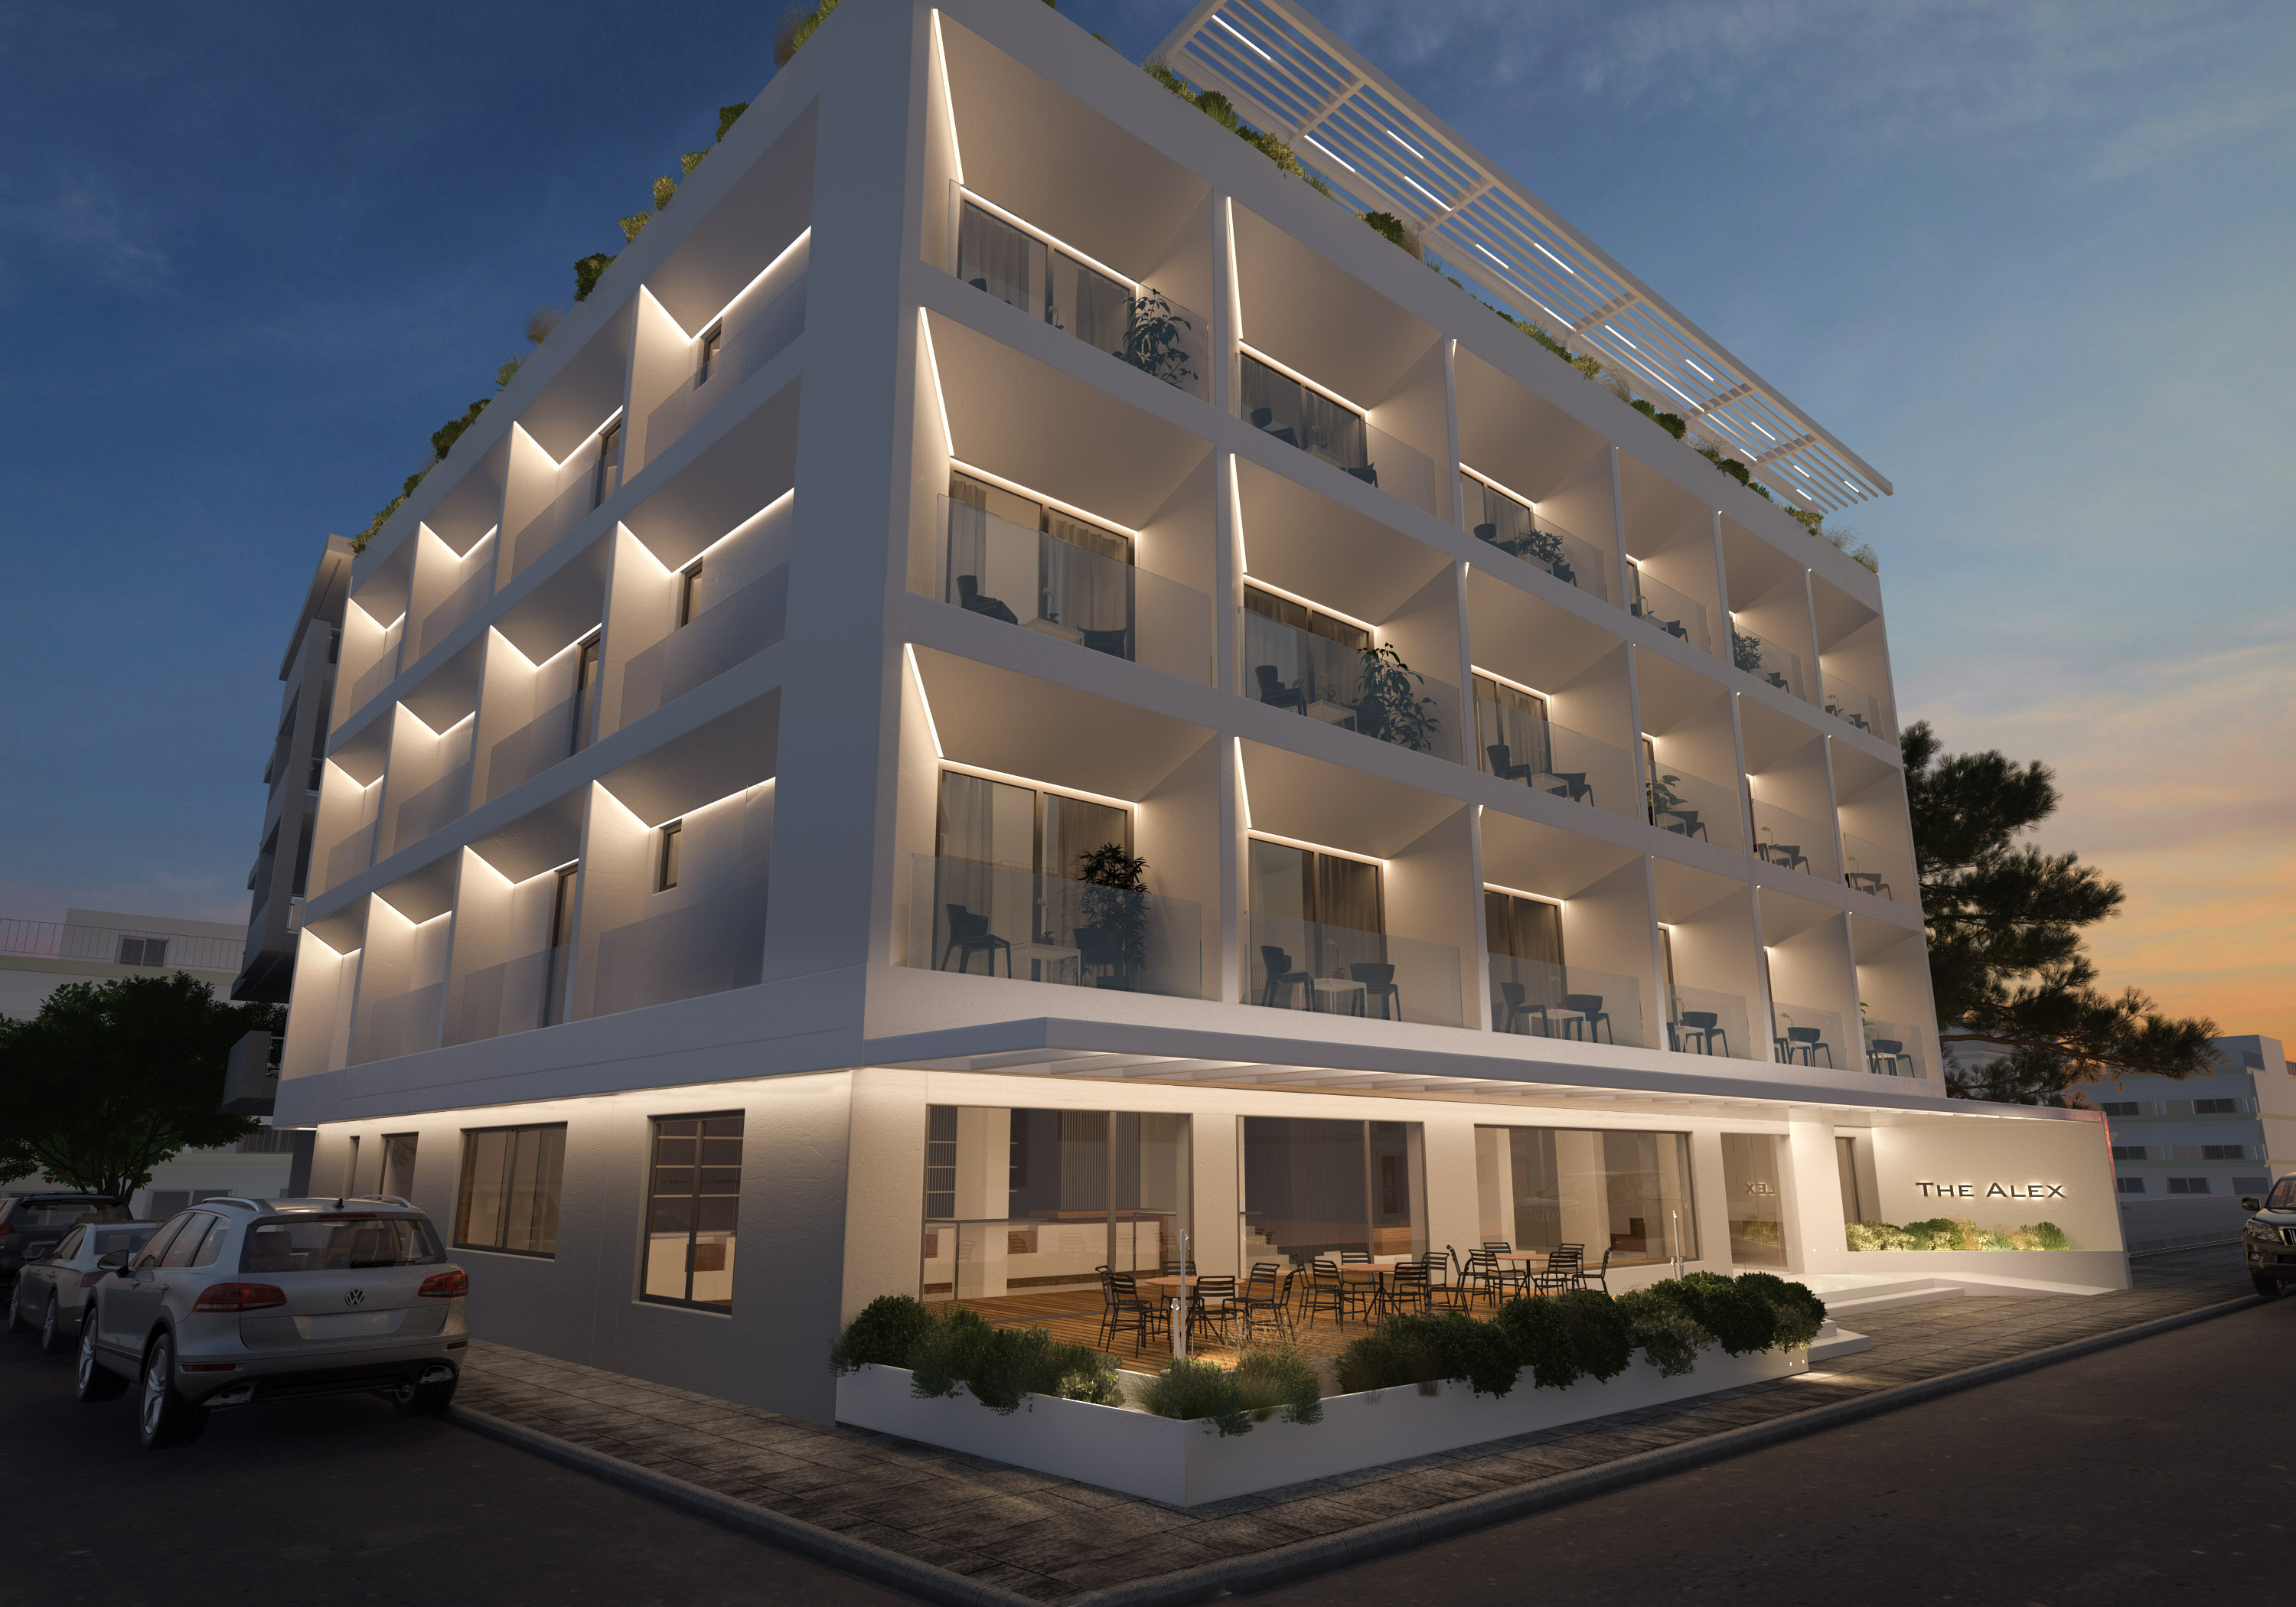 The Alex Hotel, Athens Riviera